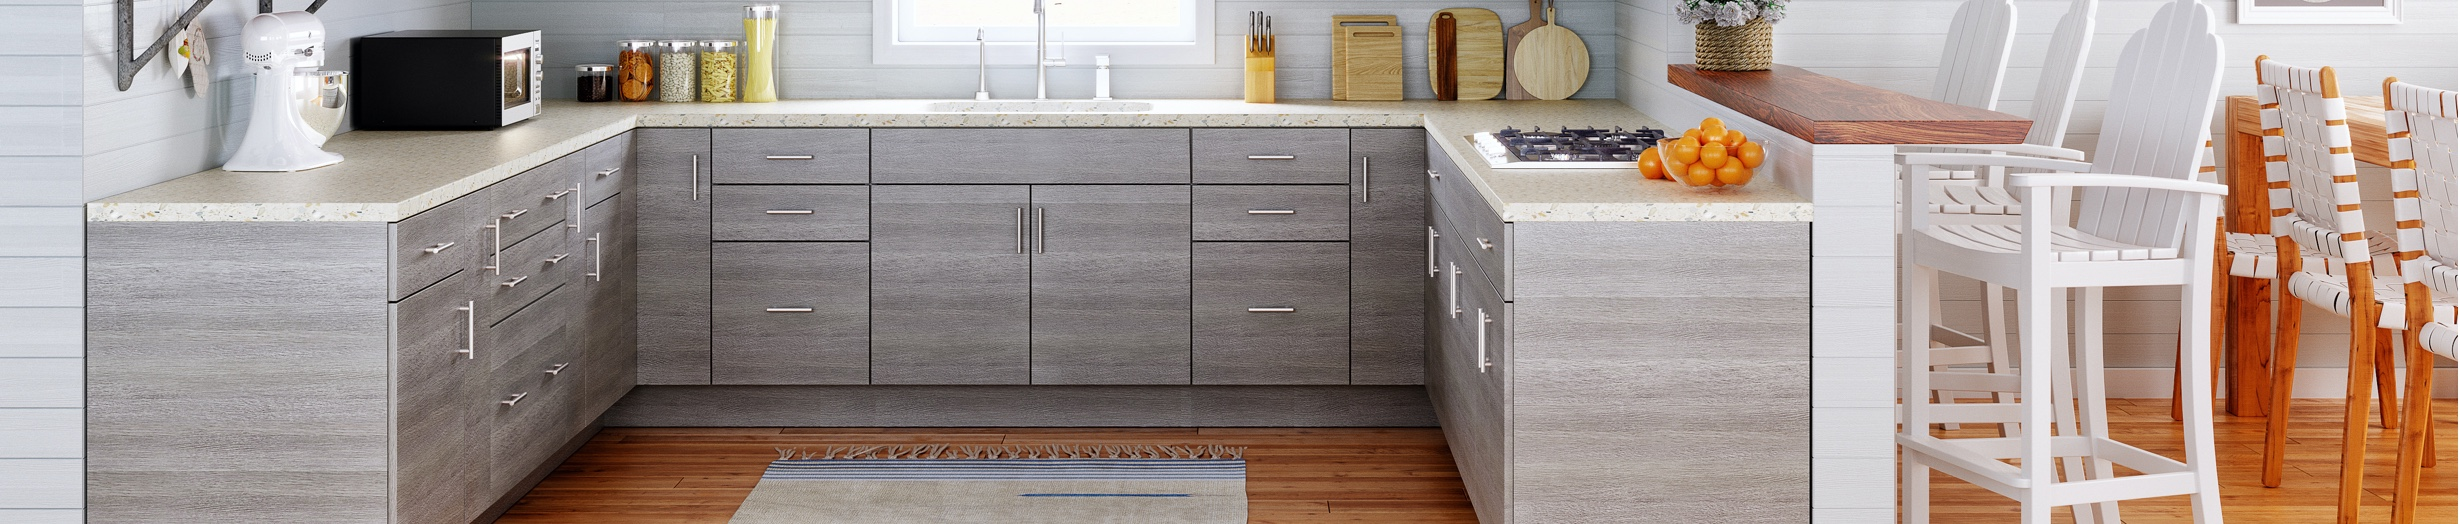 Gray Kitchen Cabinets Vevano Home